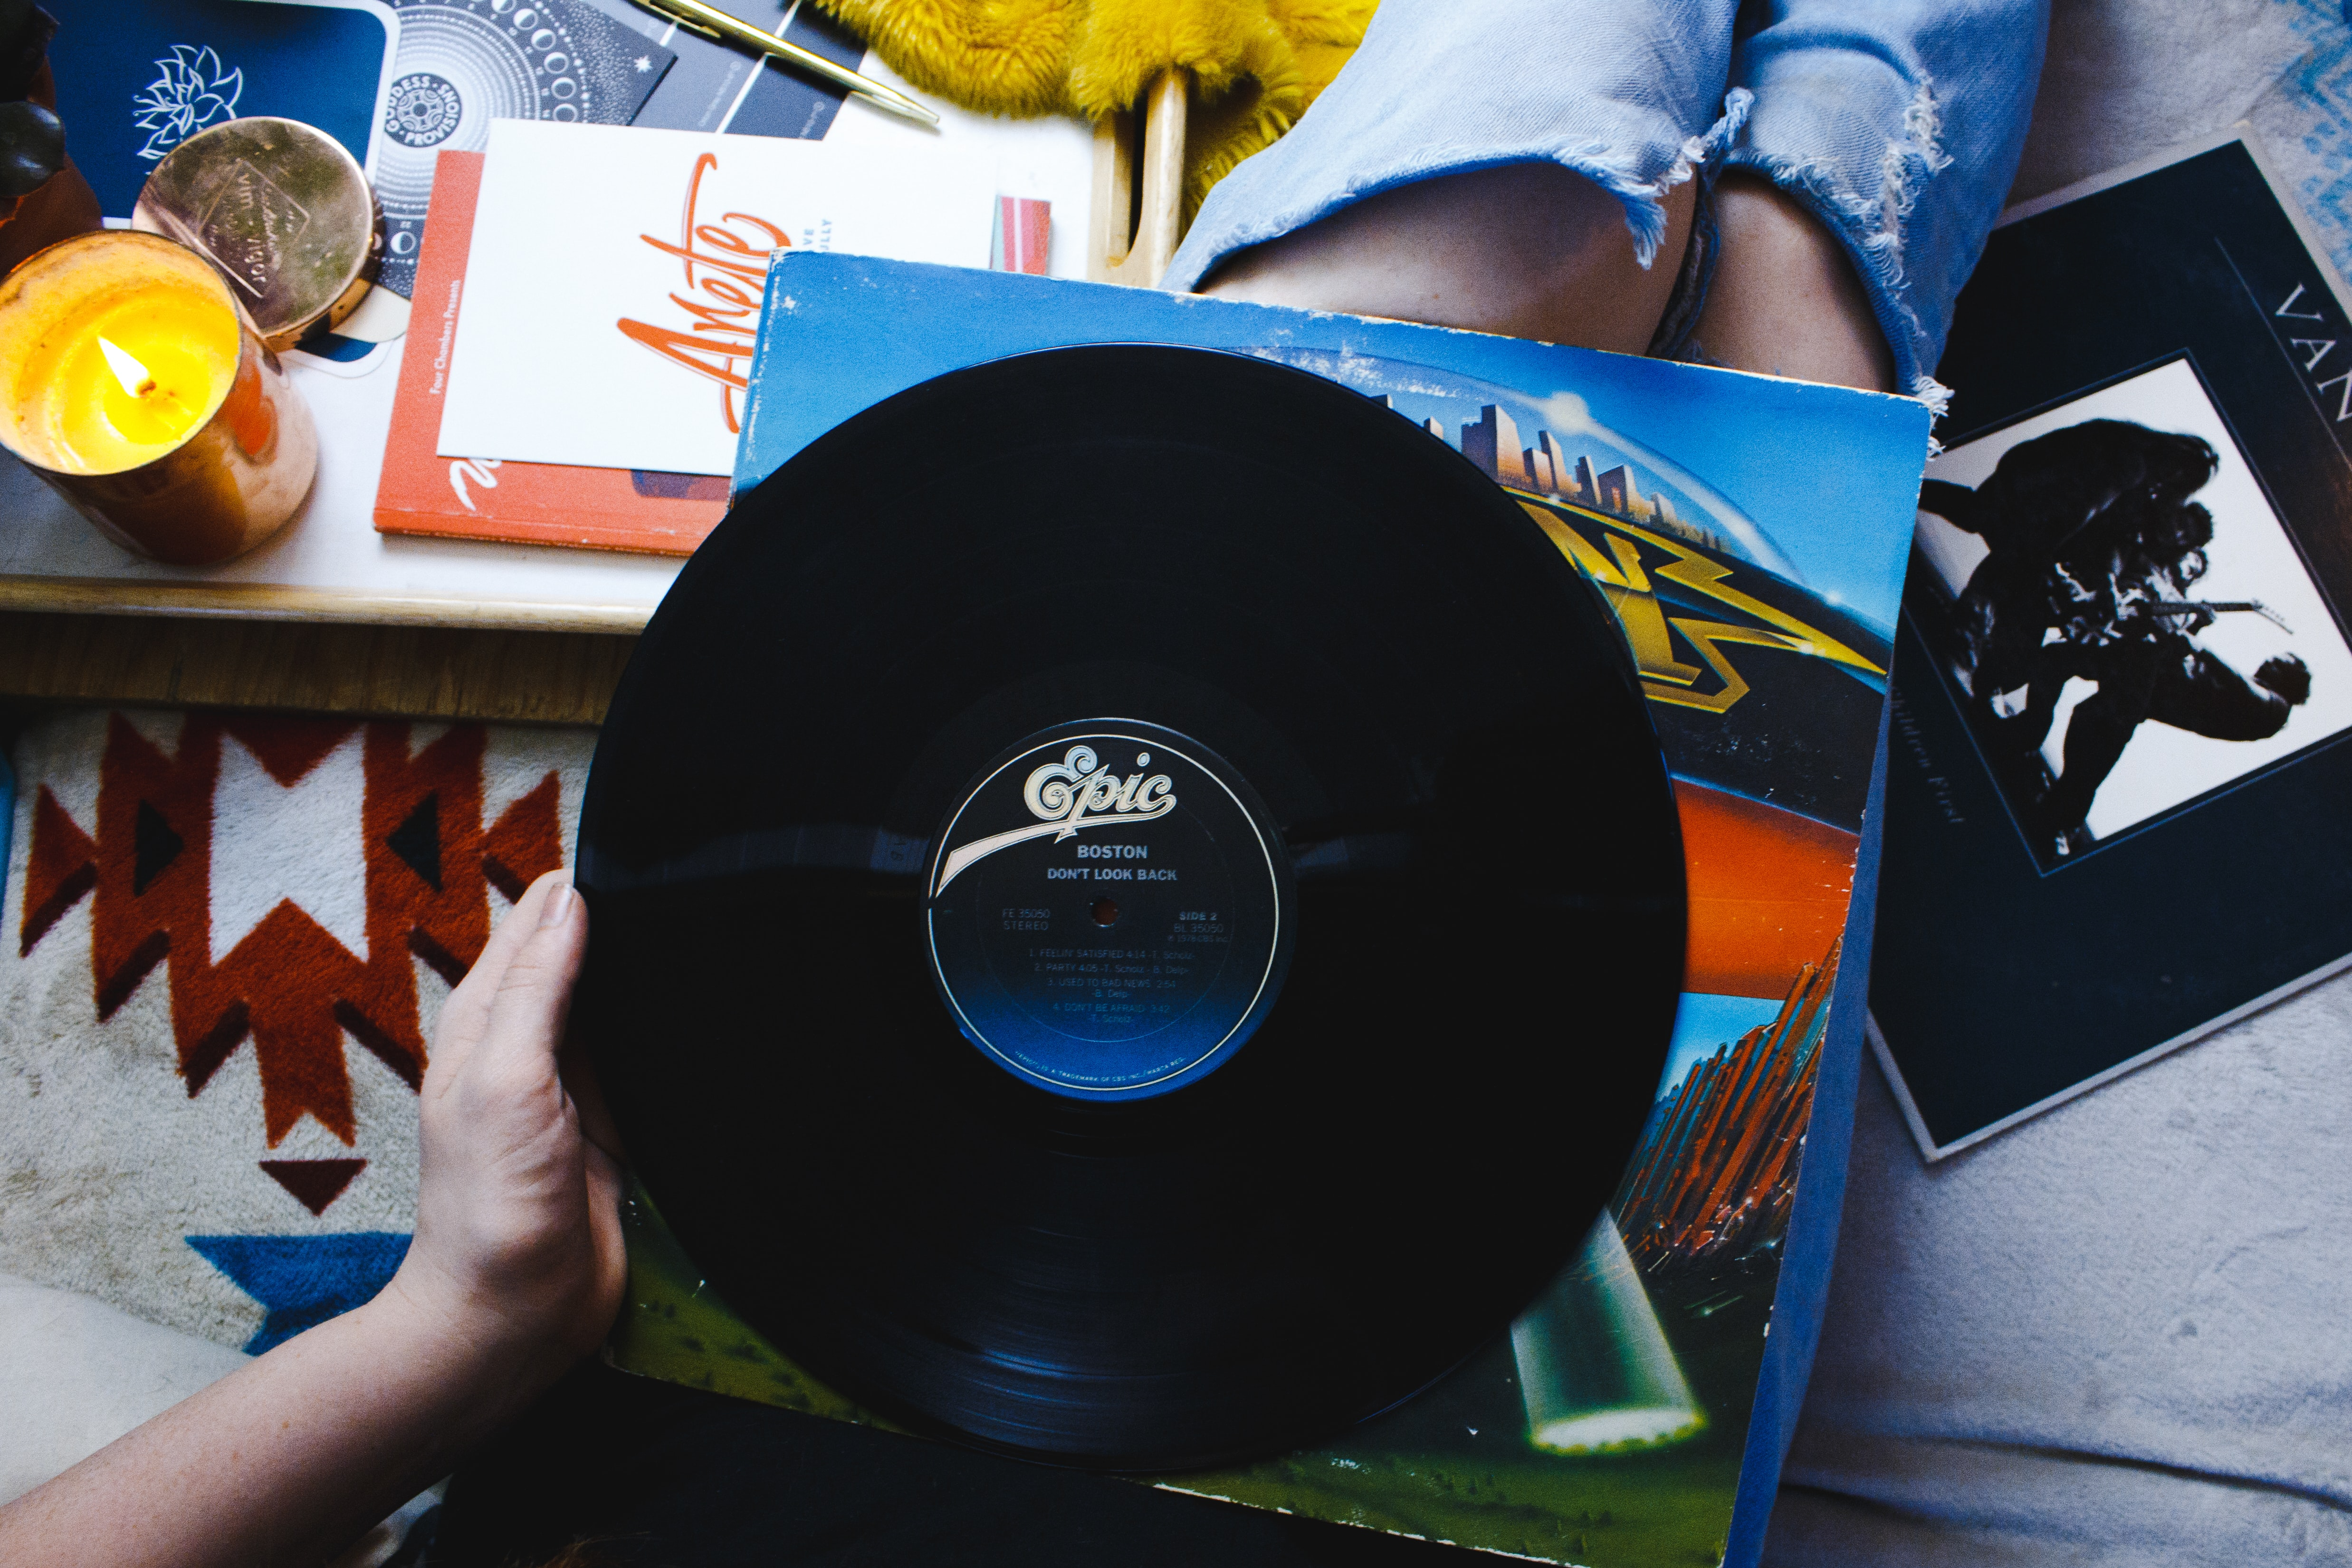 person holding Epic vinyl record